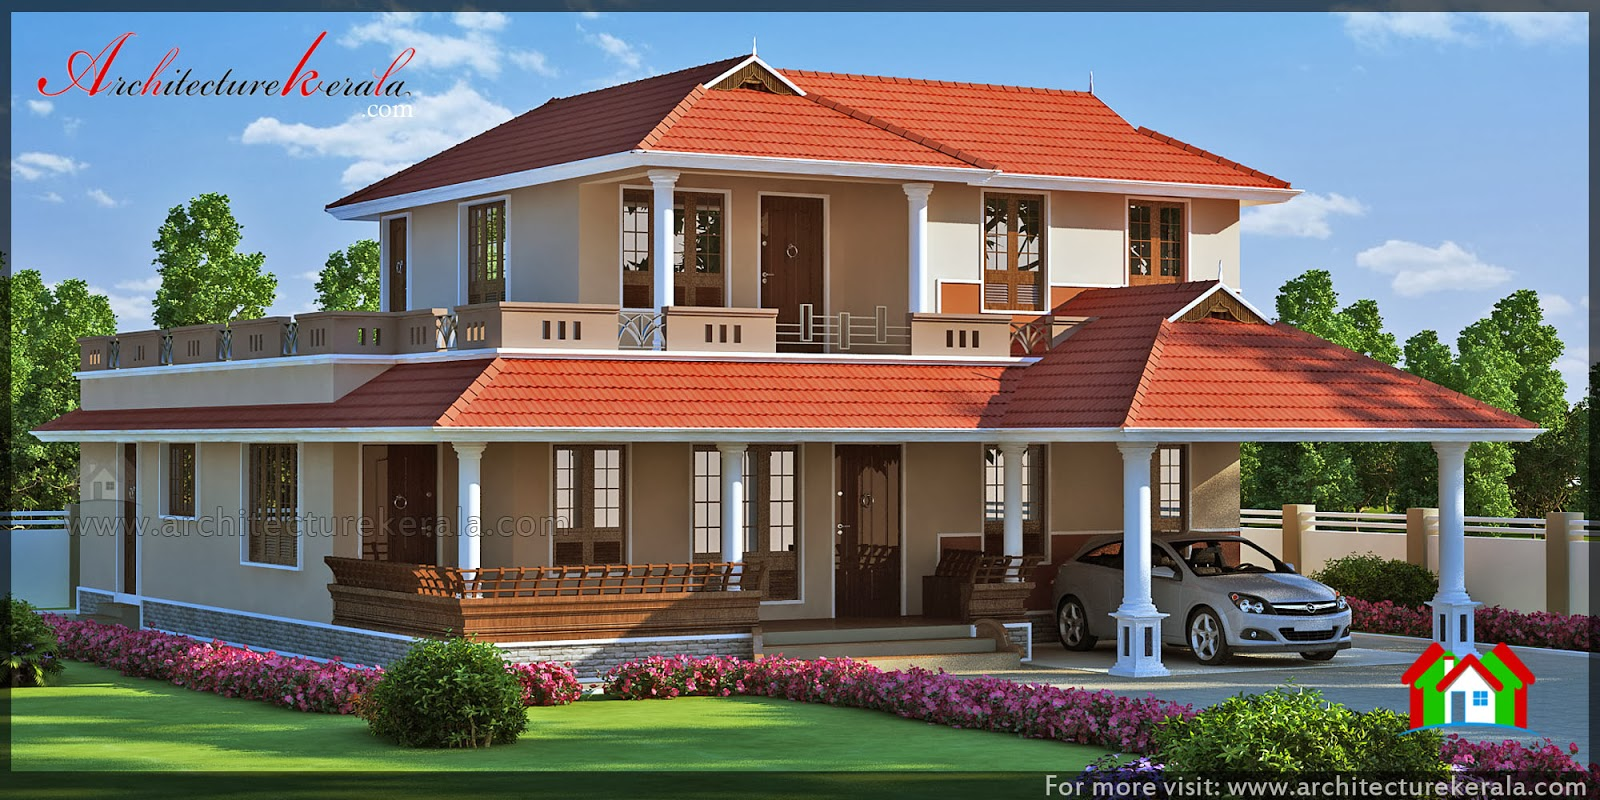 Architecture kerala kerala plans and elevations for Home designs kerala architects